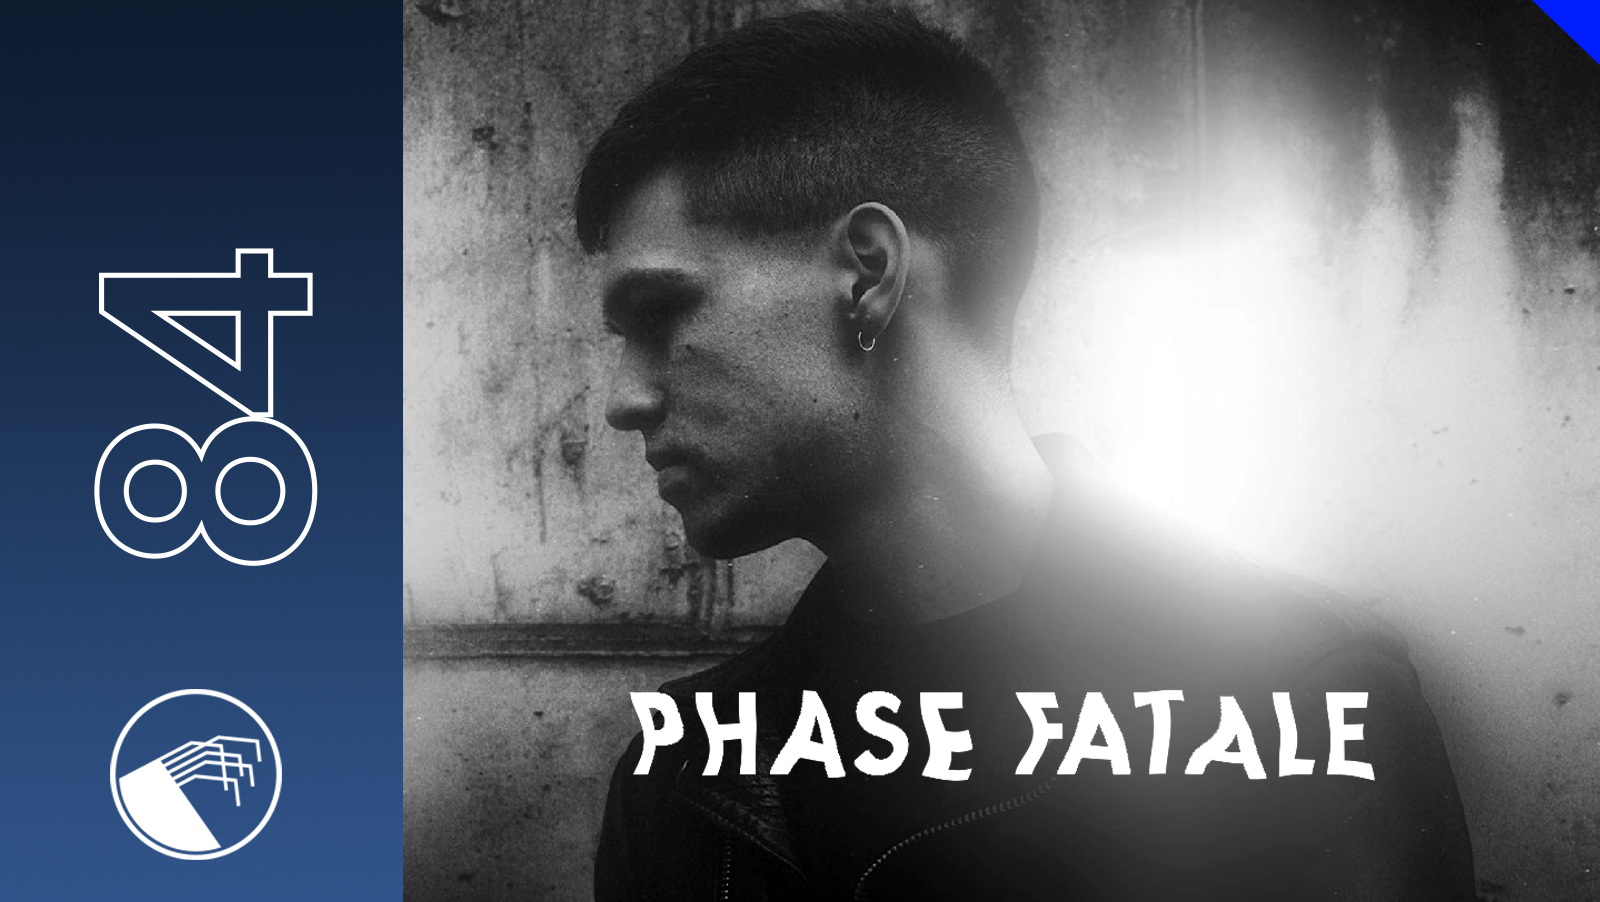 084 Phase Fatale